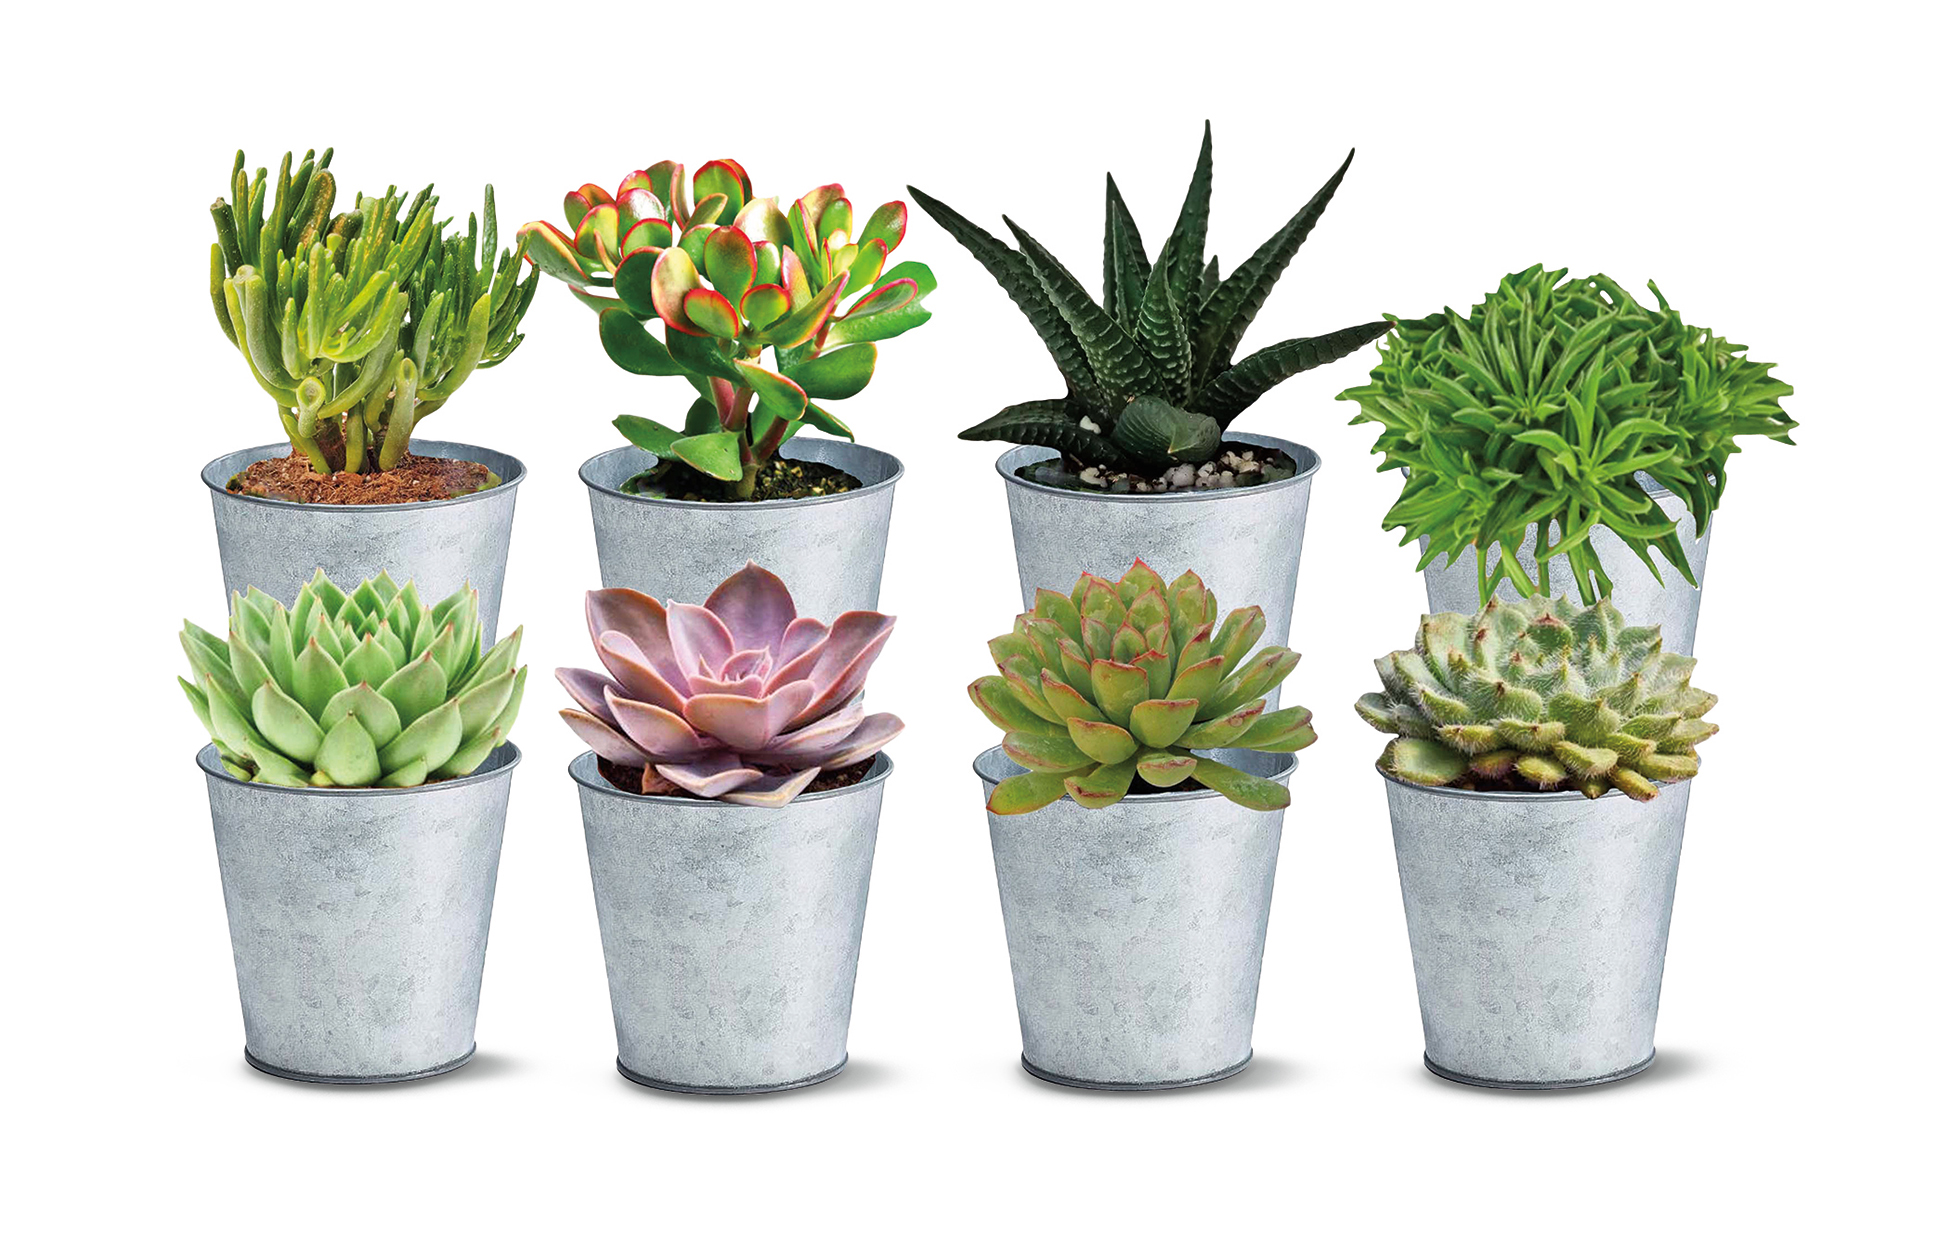 8 different succulents in silver tins on white background